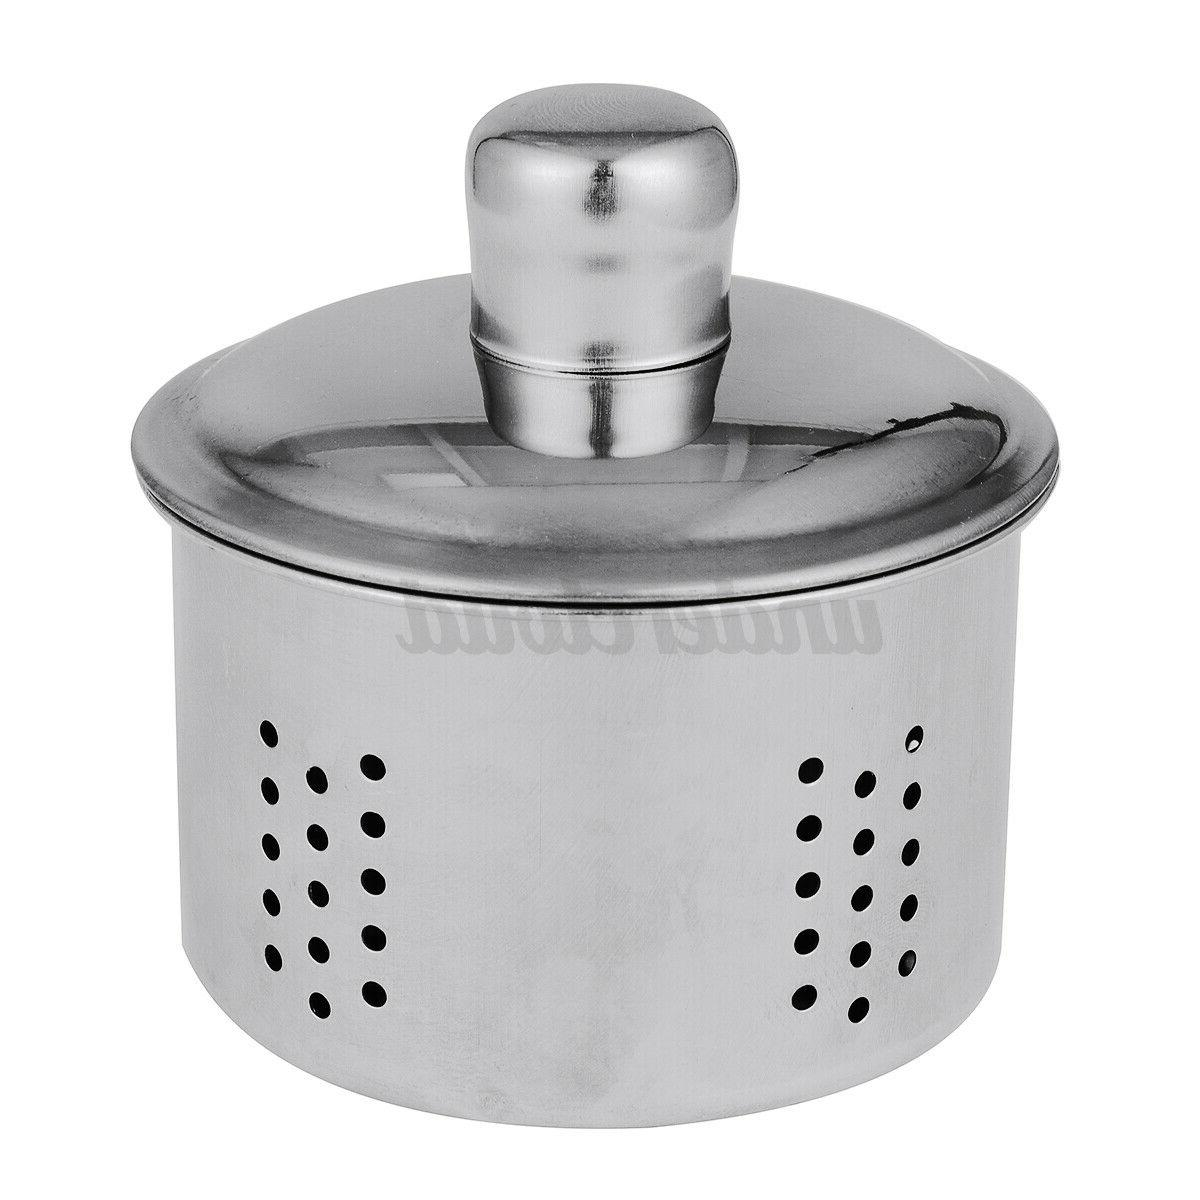 Stainless Coffee Strainer Infuse